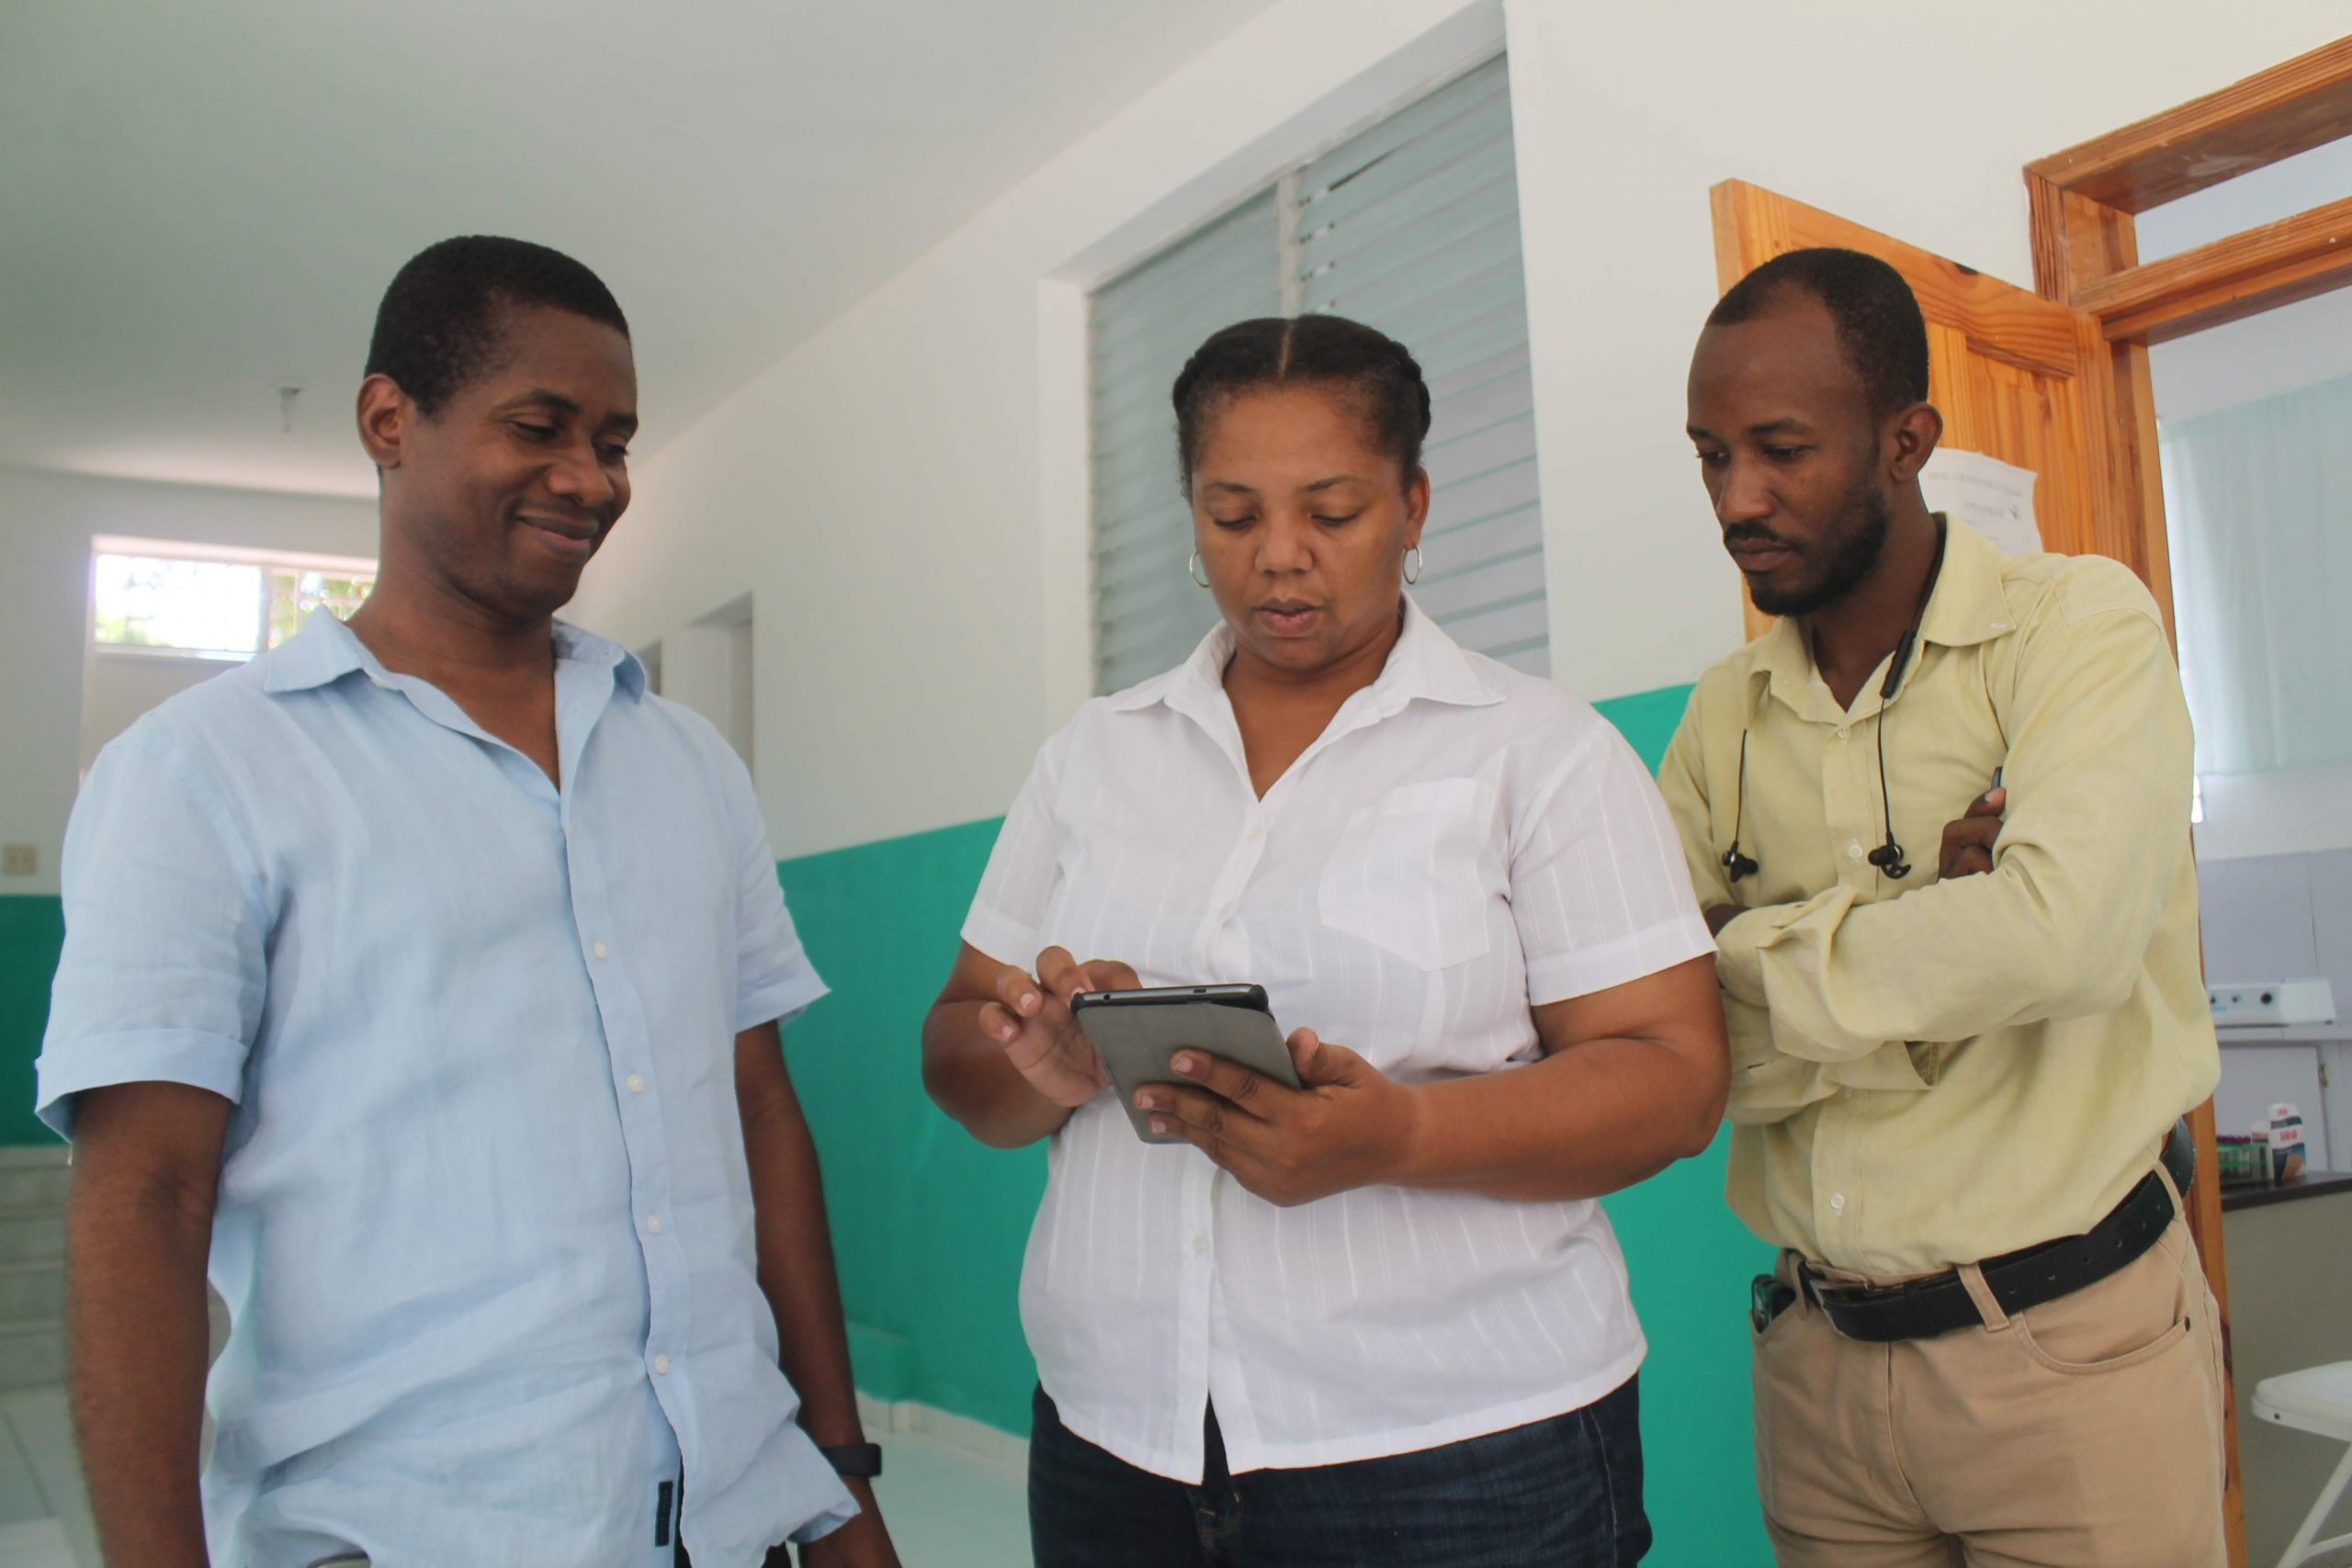 Three doctors with a digital tablet